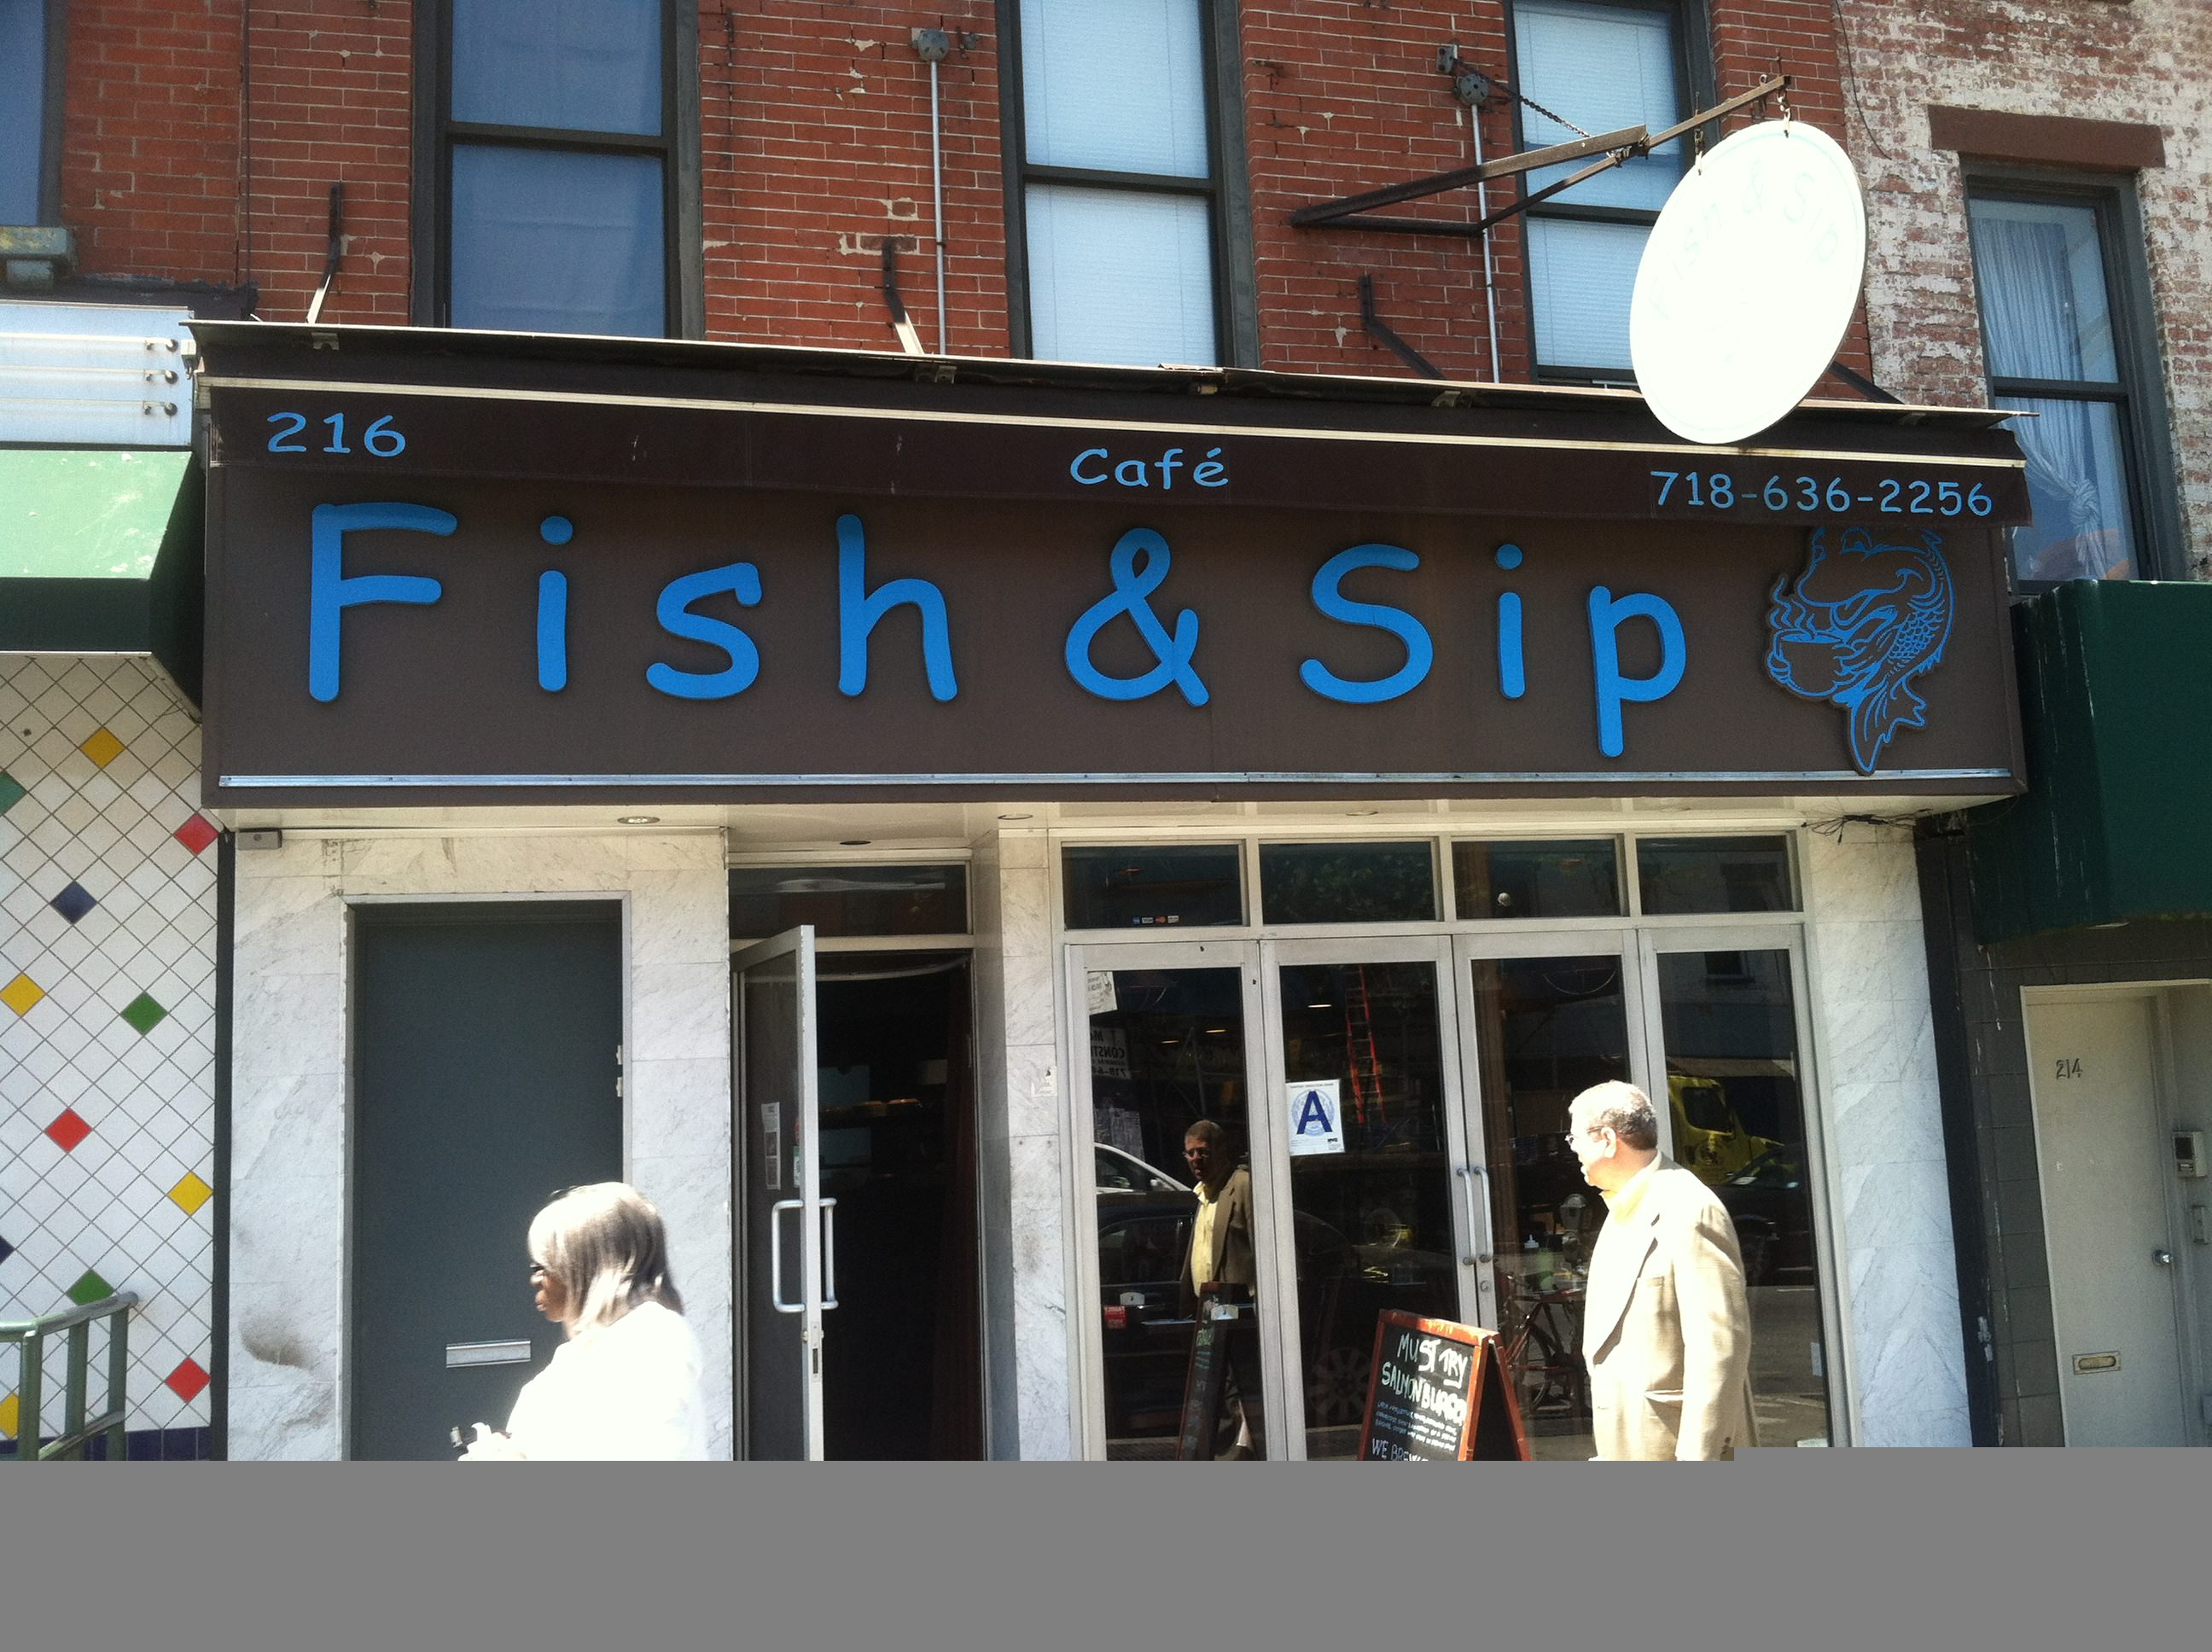 Fish & Sip Cafe